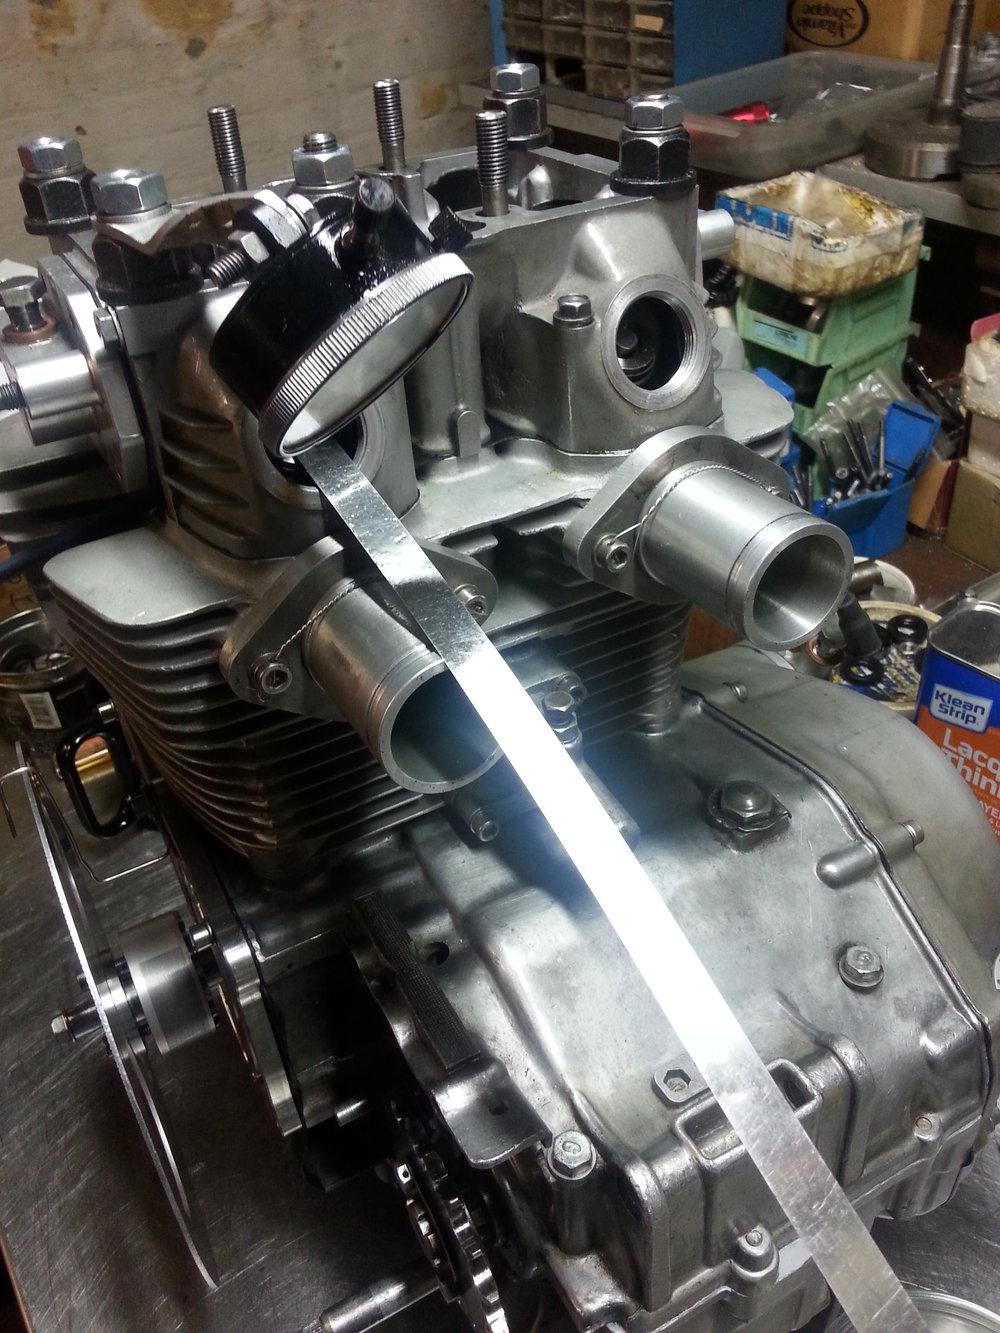 CB350 Road Race engine coming together for race day